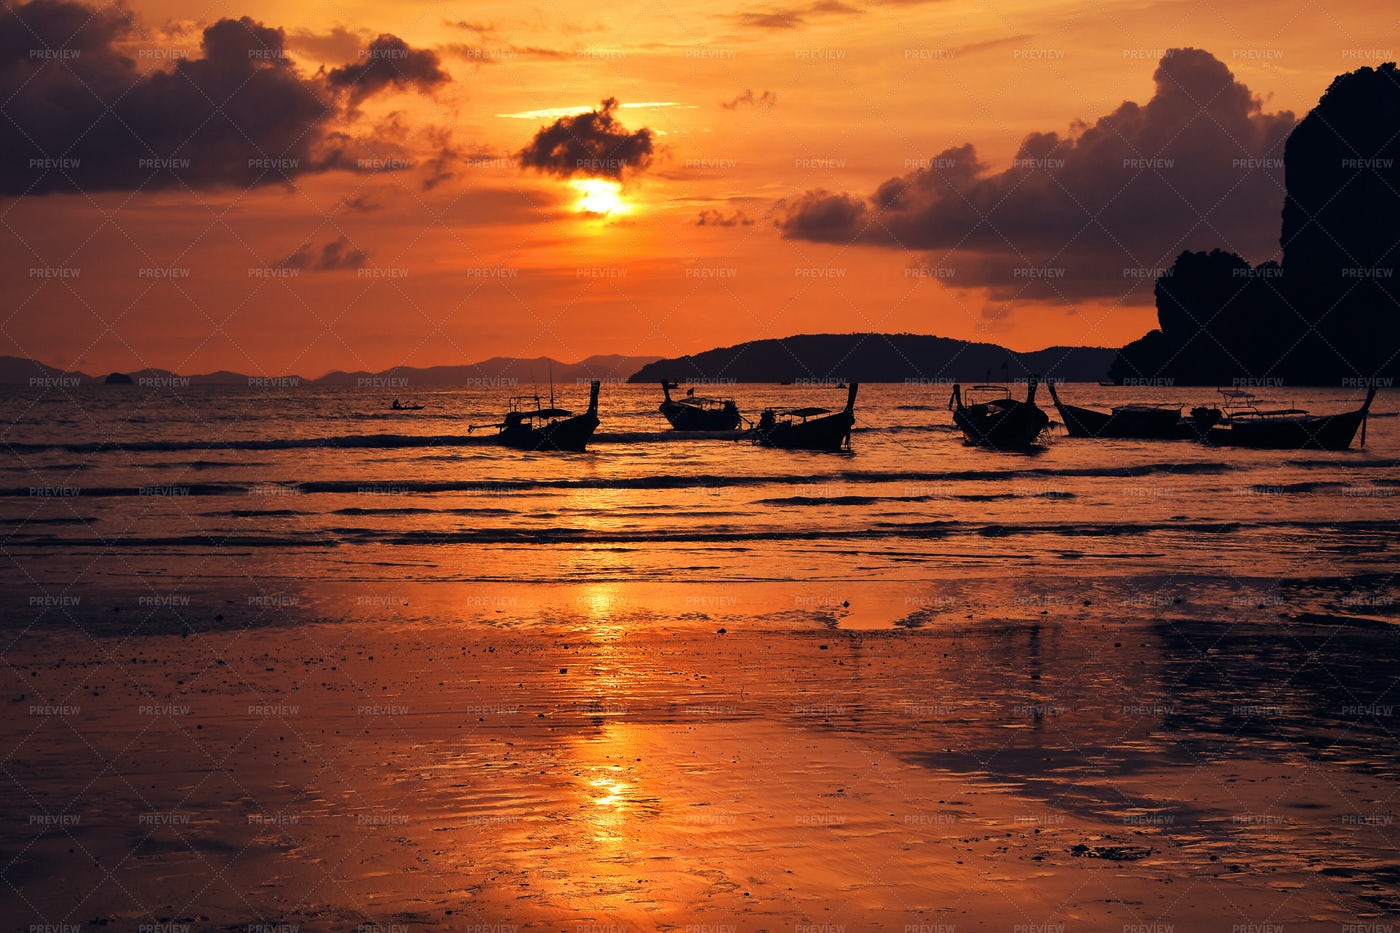 Sunset Over Sea In Thailand: Stock Photos